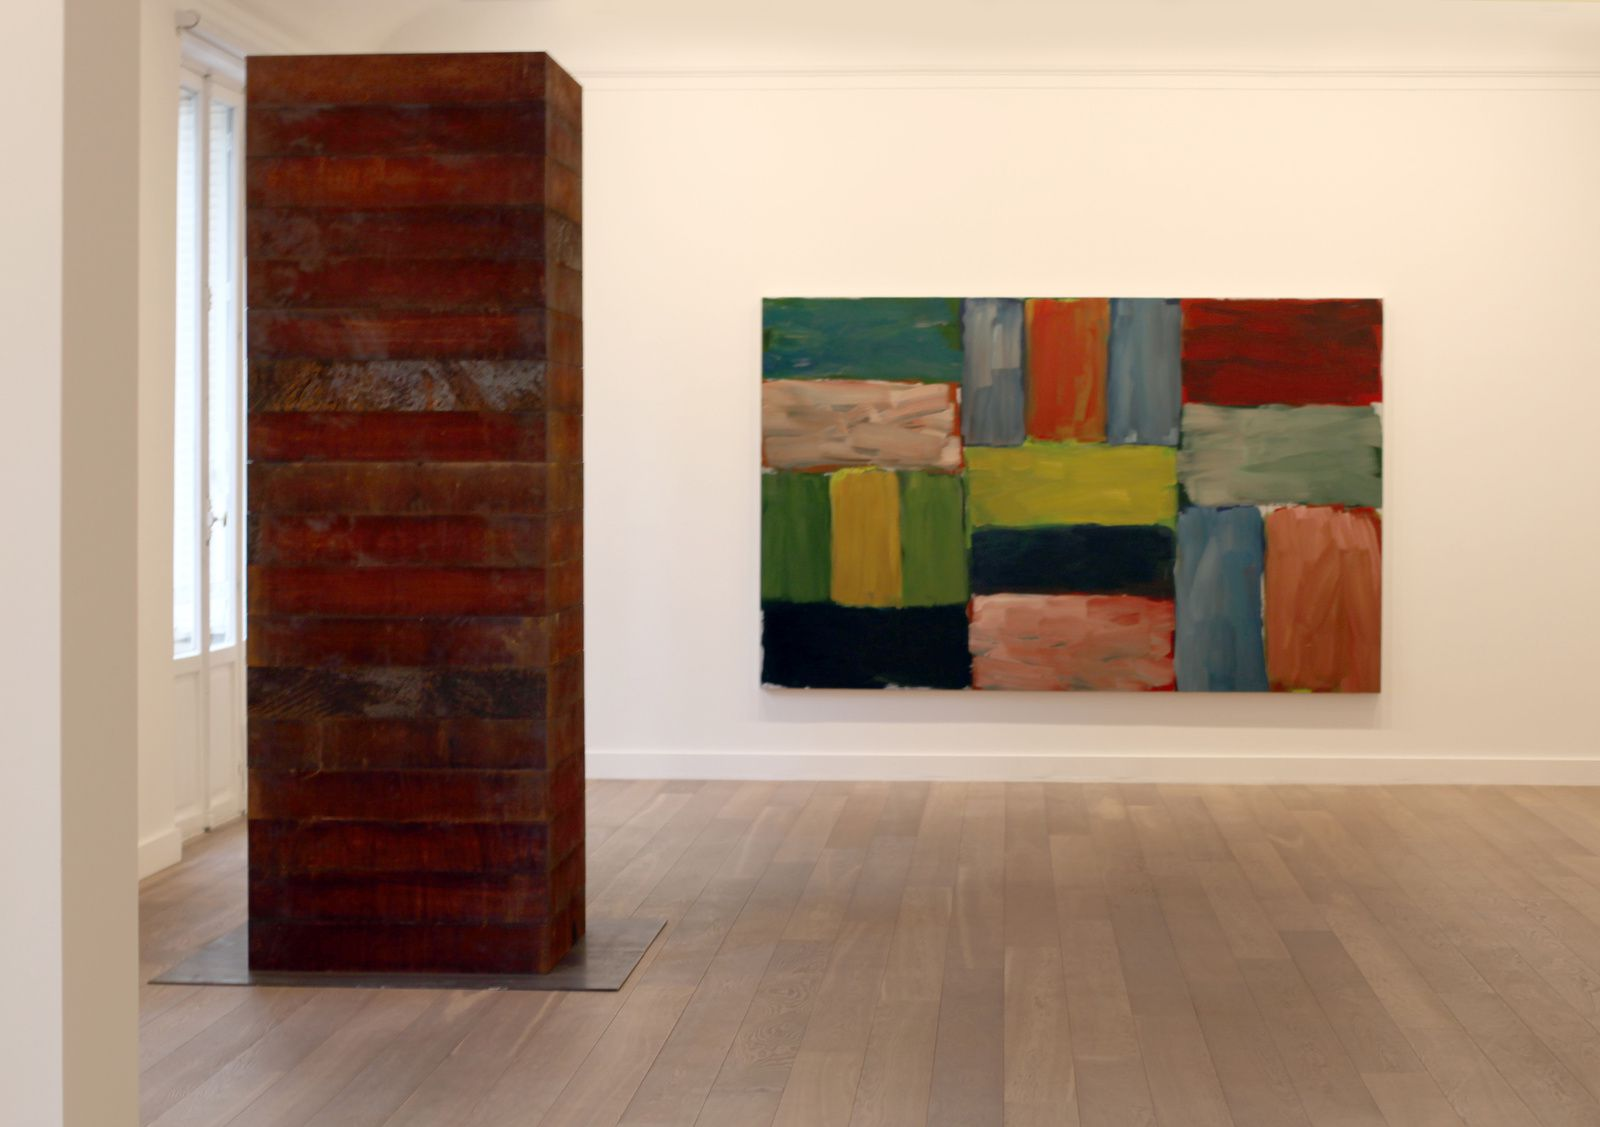 """Untitled (Tower)"", 2015 de Sean SCULLY - Courtesy Galerie Lelong © Photo Éric Simon"